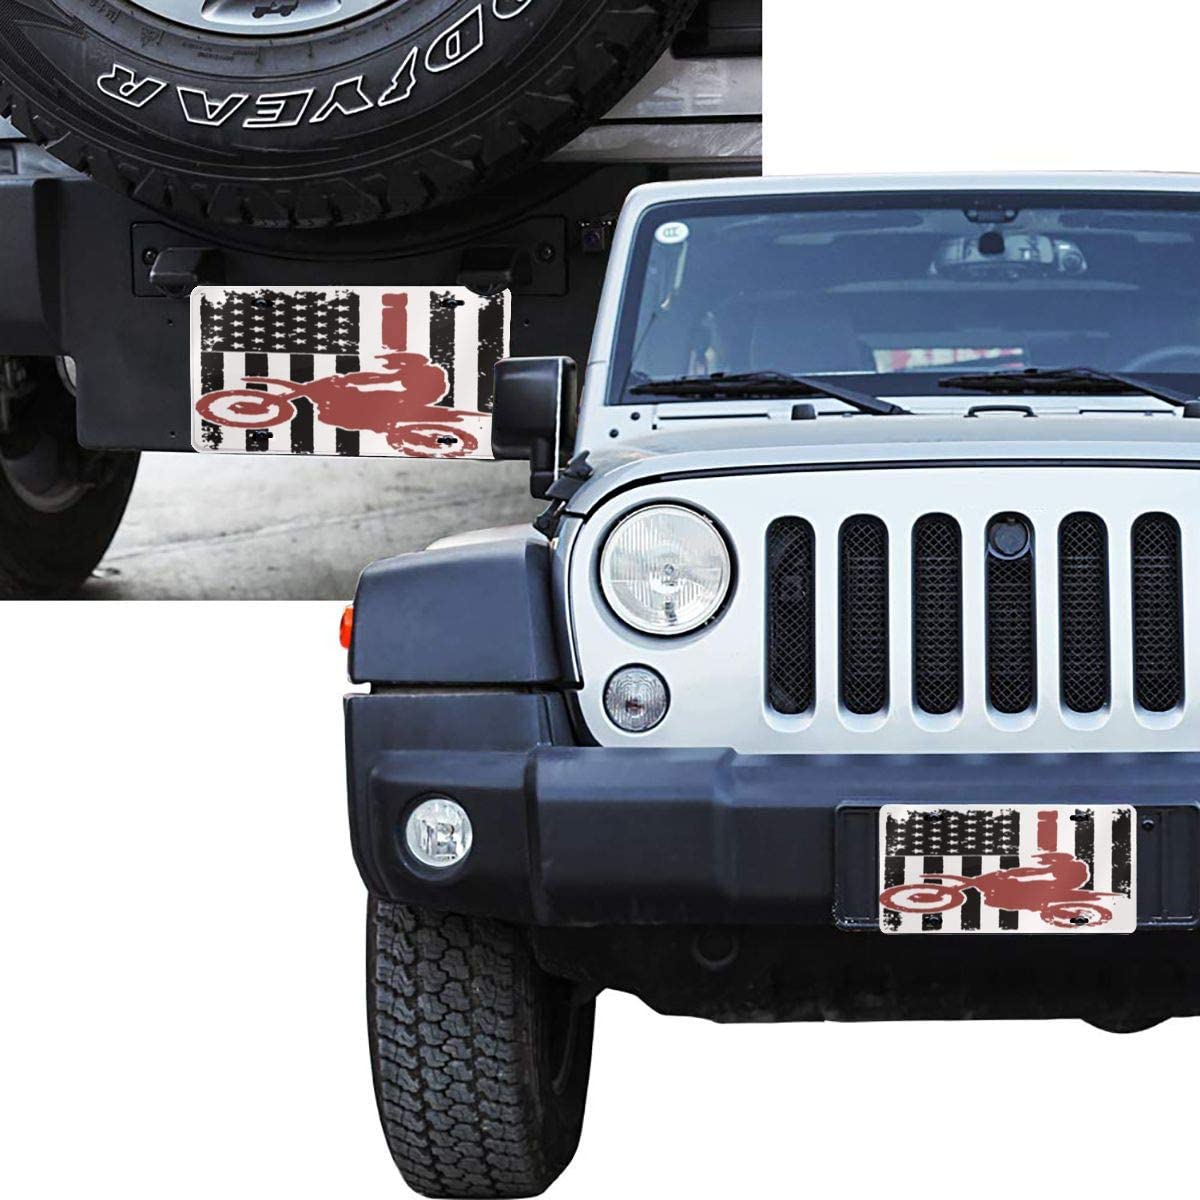 USA Flag Dirtbike Motocross License Plate Metal Aluminum Vanity Auto Car Tag for Decoration 6x12 Inchs